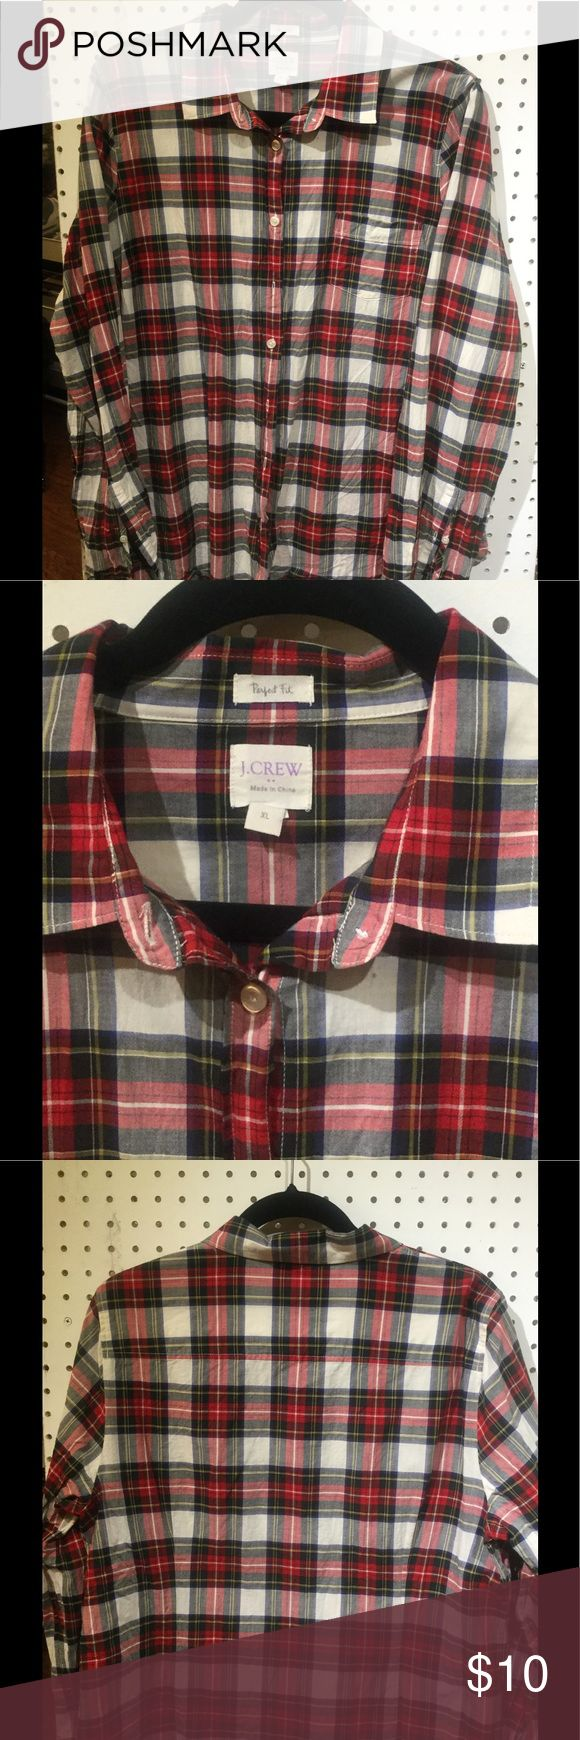 J Crew Outlet Plaid Perfect Fit Blouse Perfect fit plaid blouse. 100%. Machine wash. J Crew Tops Button Down Shirts